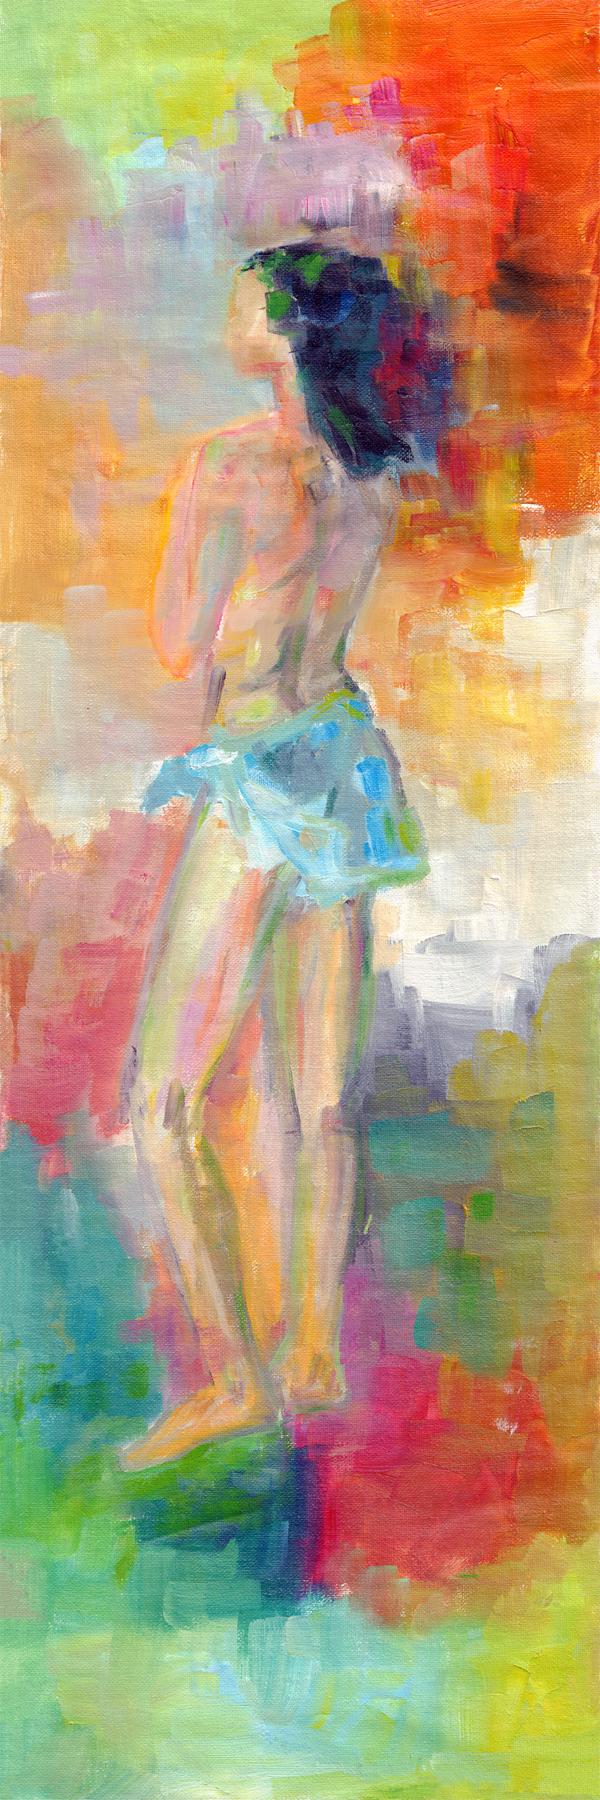 """Nostalgia"" figurative Oil Painting on Canvas. 20x60 cm."